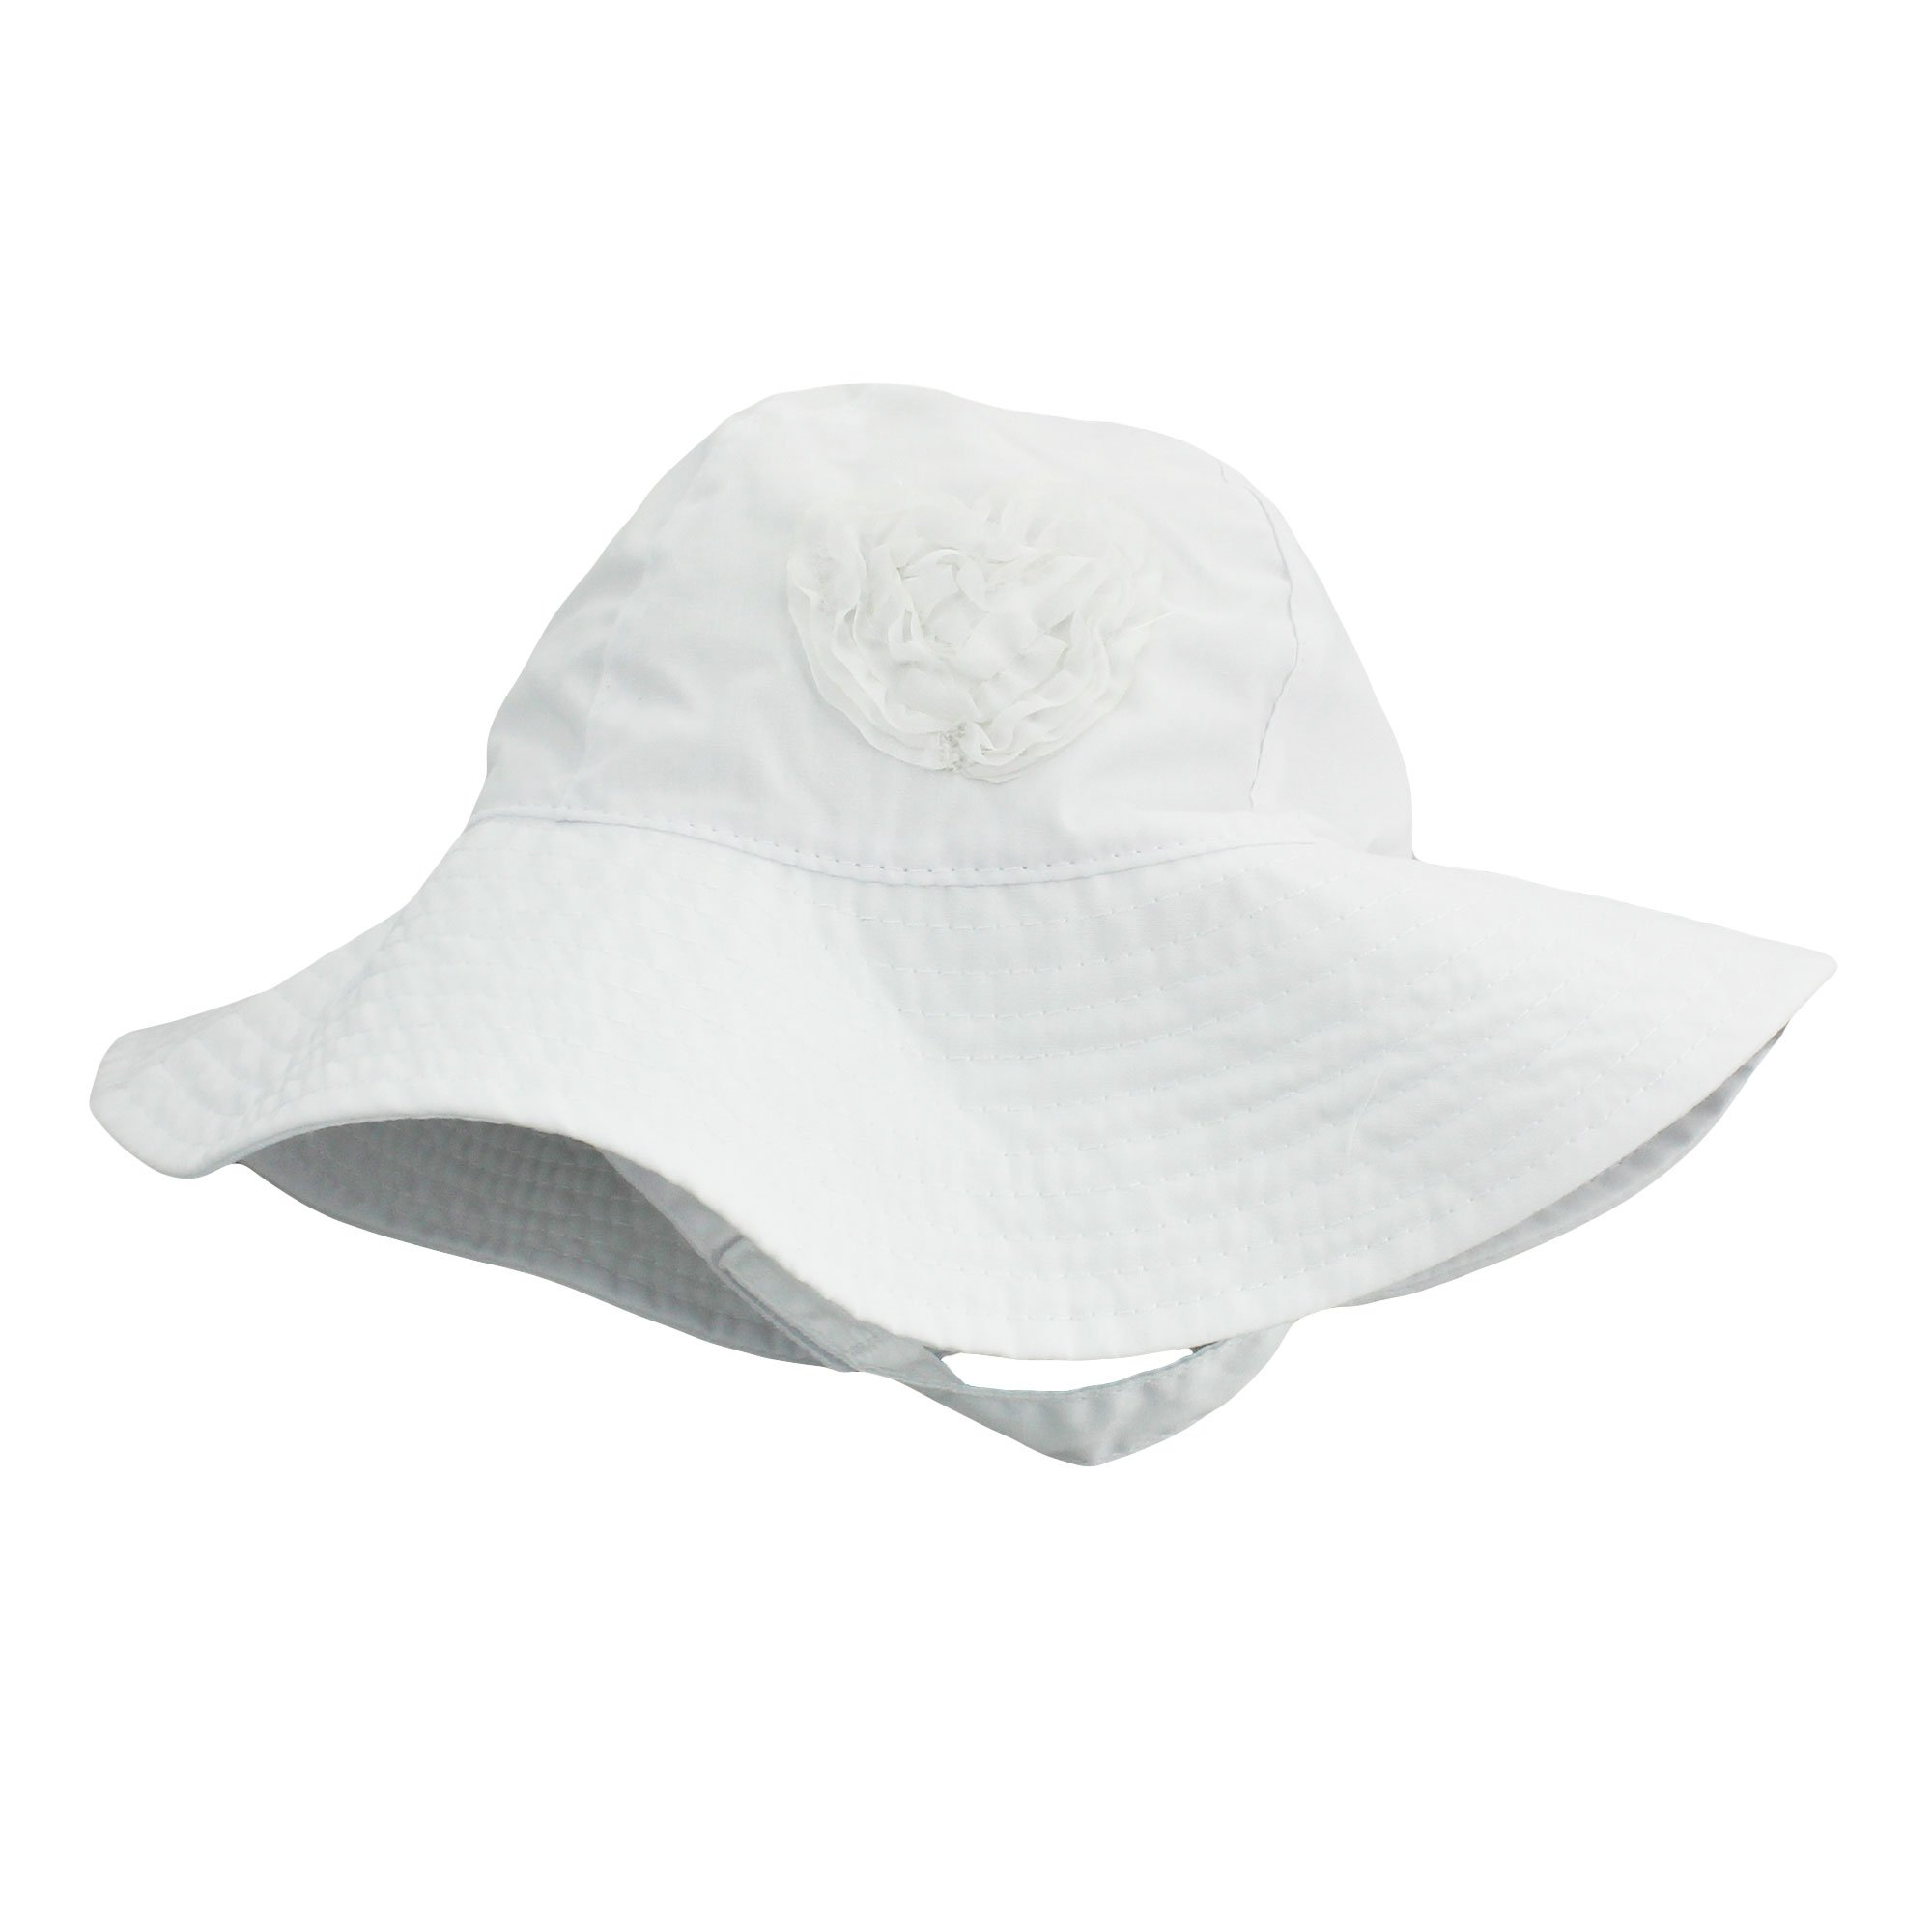 8b47877d Little Me Sun Hat with Heart and Chin Strap for Infant Girls Solid White 12-